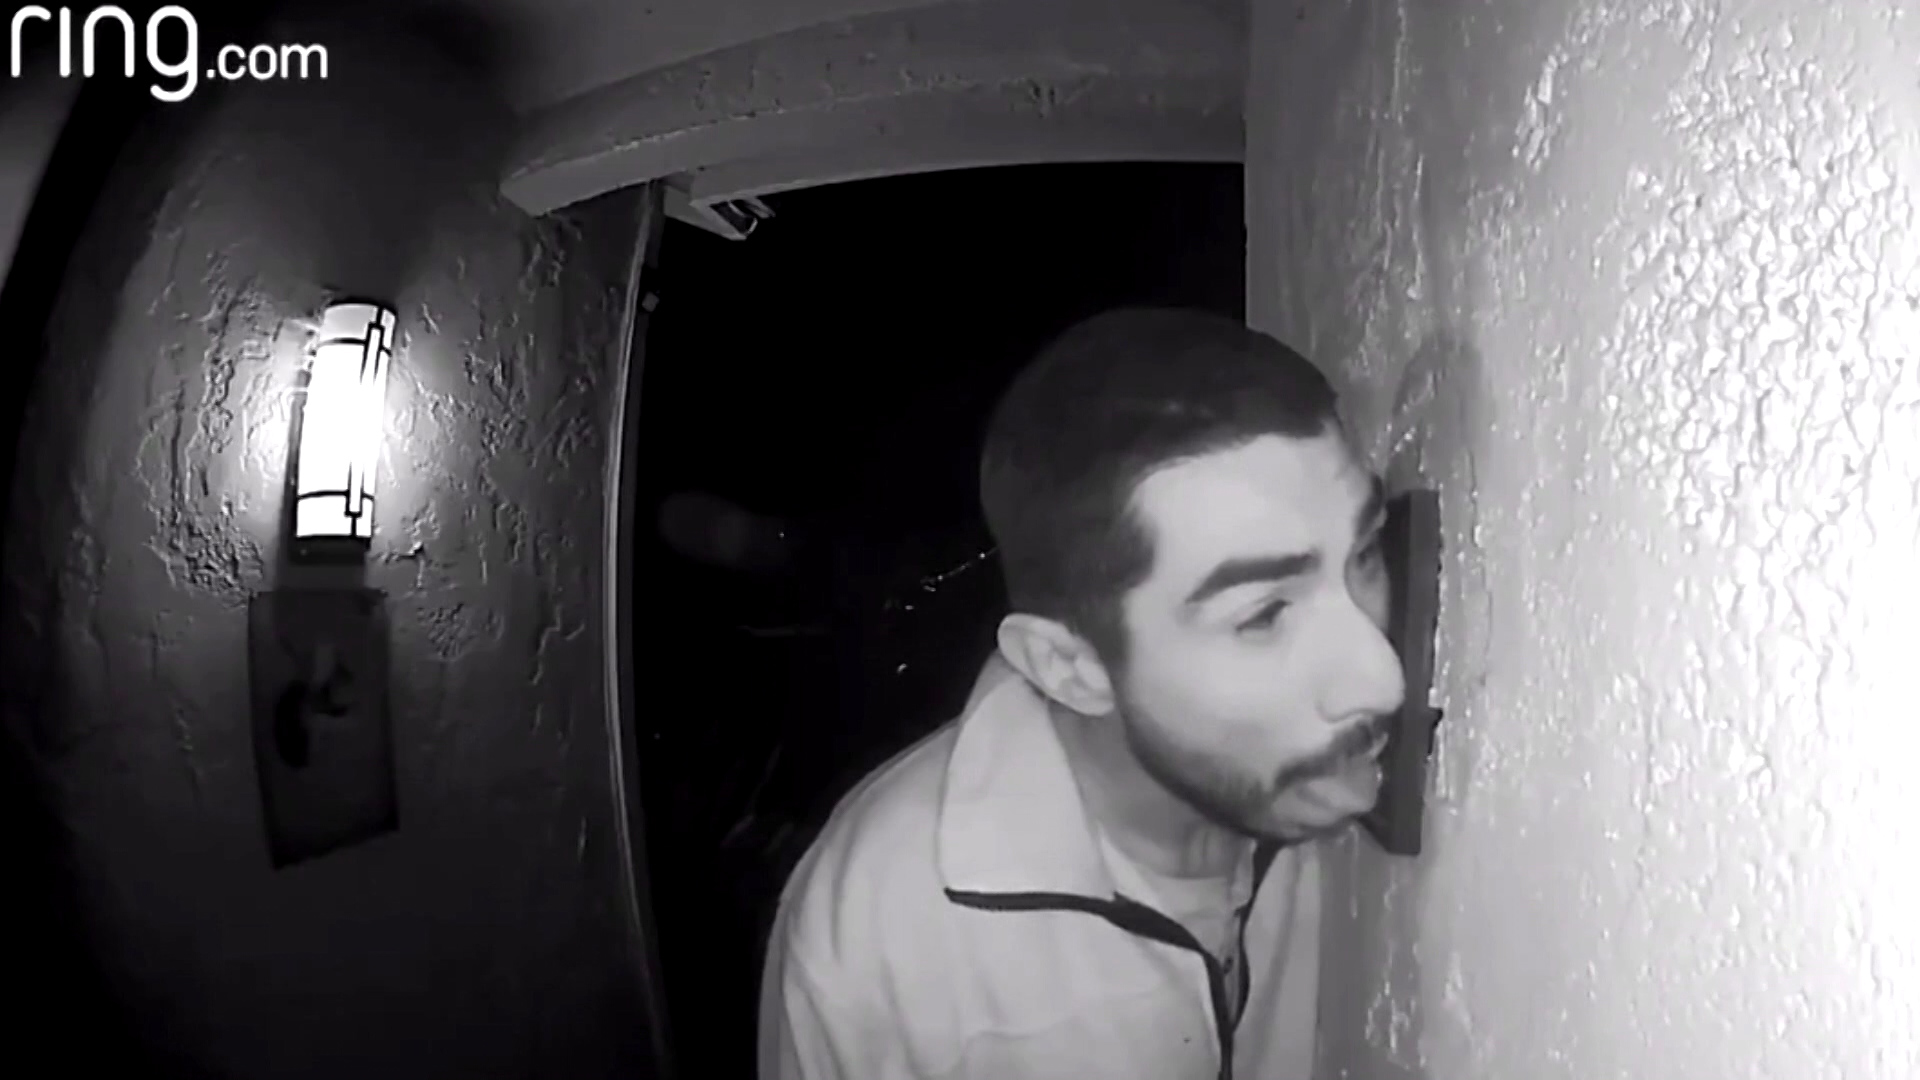 Prowler Licks Doorbell for 3 Hours